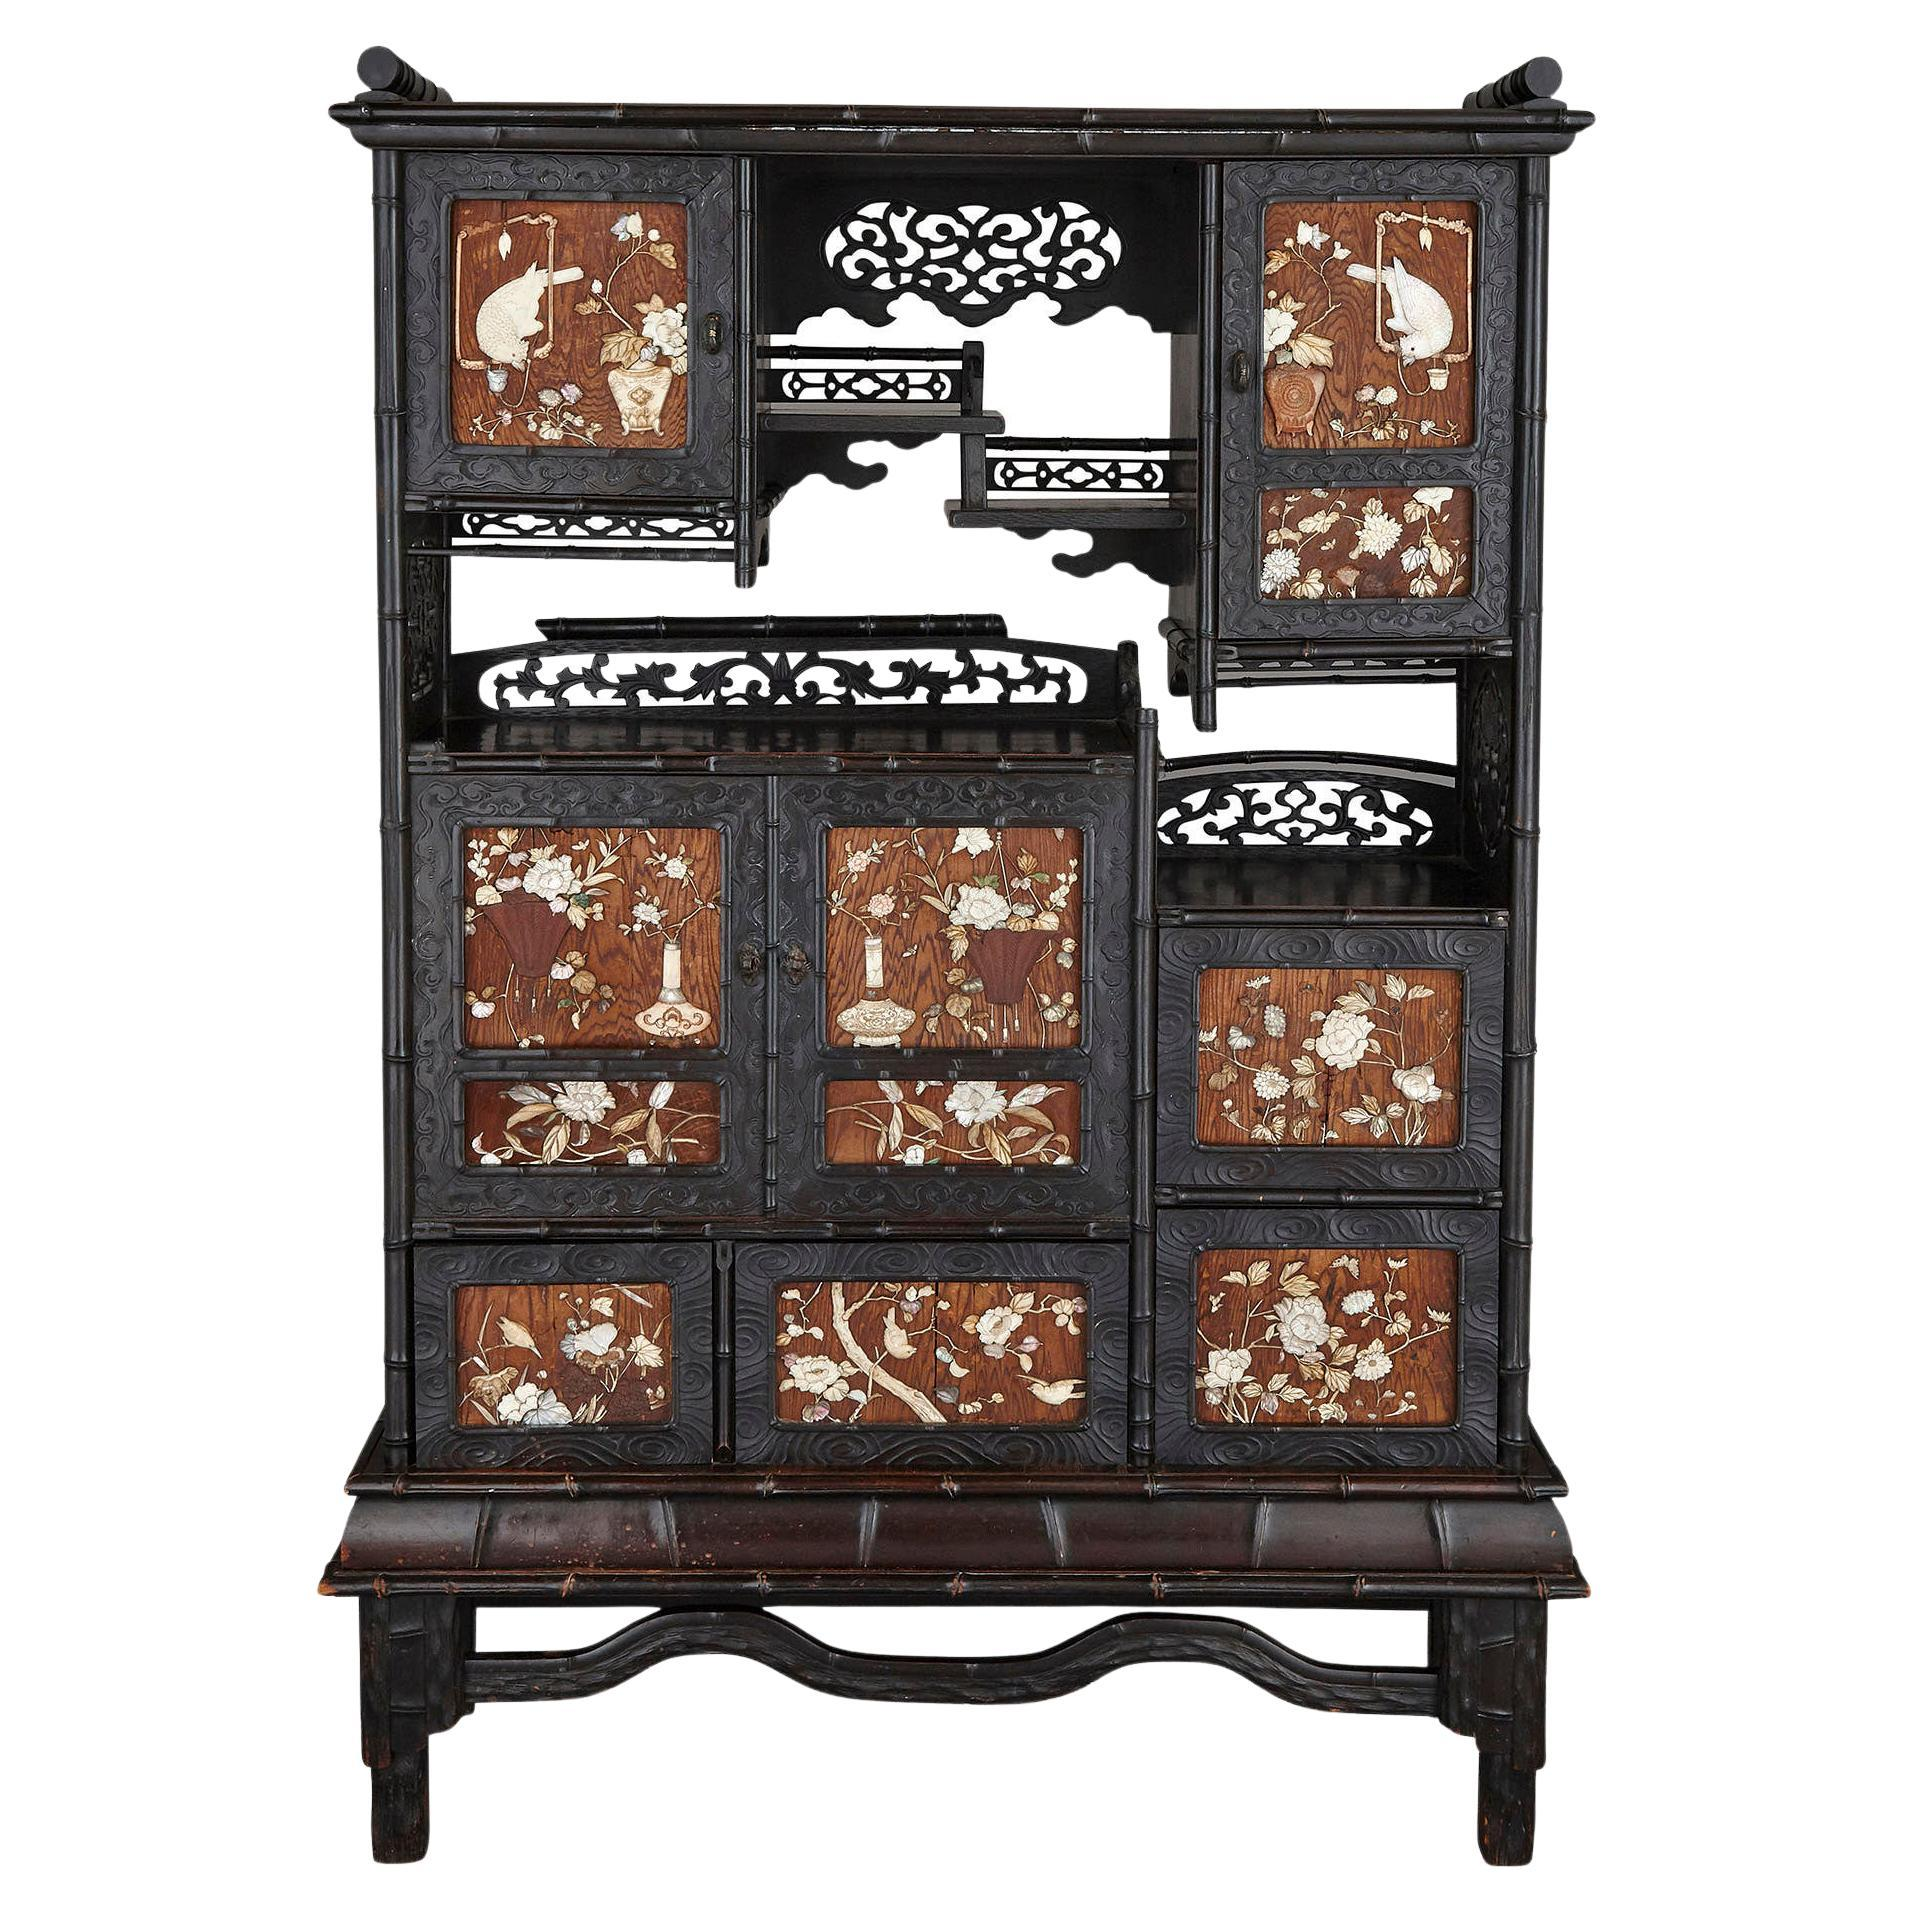 Antique Japanese Meiji Cabinet Inlaid with Mother-of-pearl